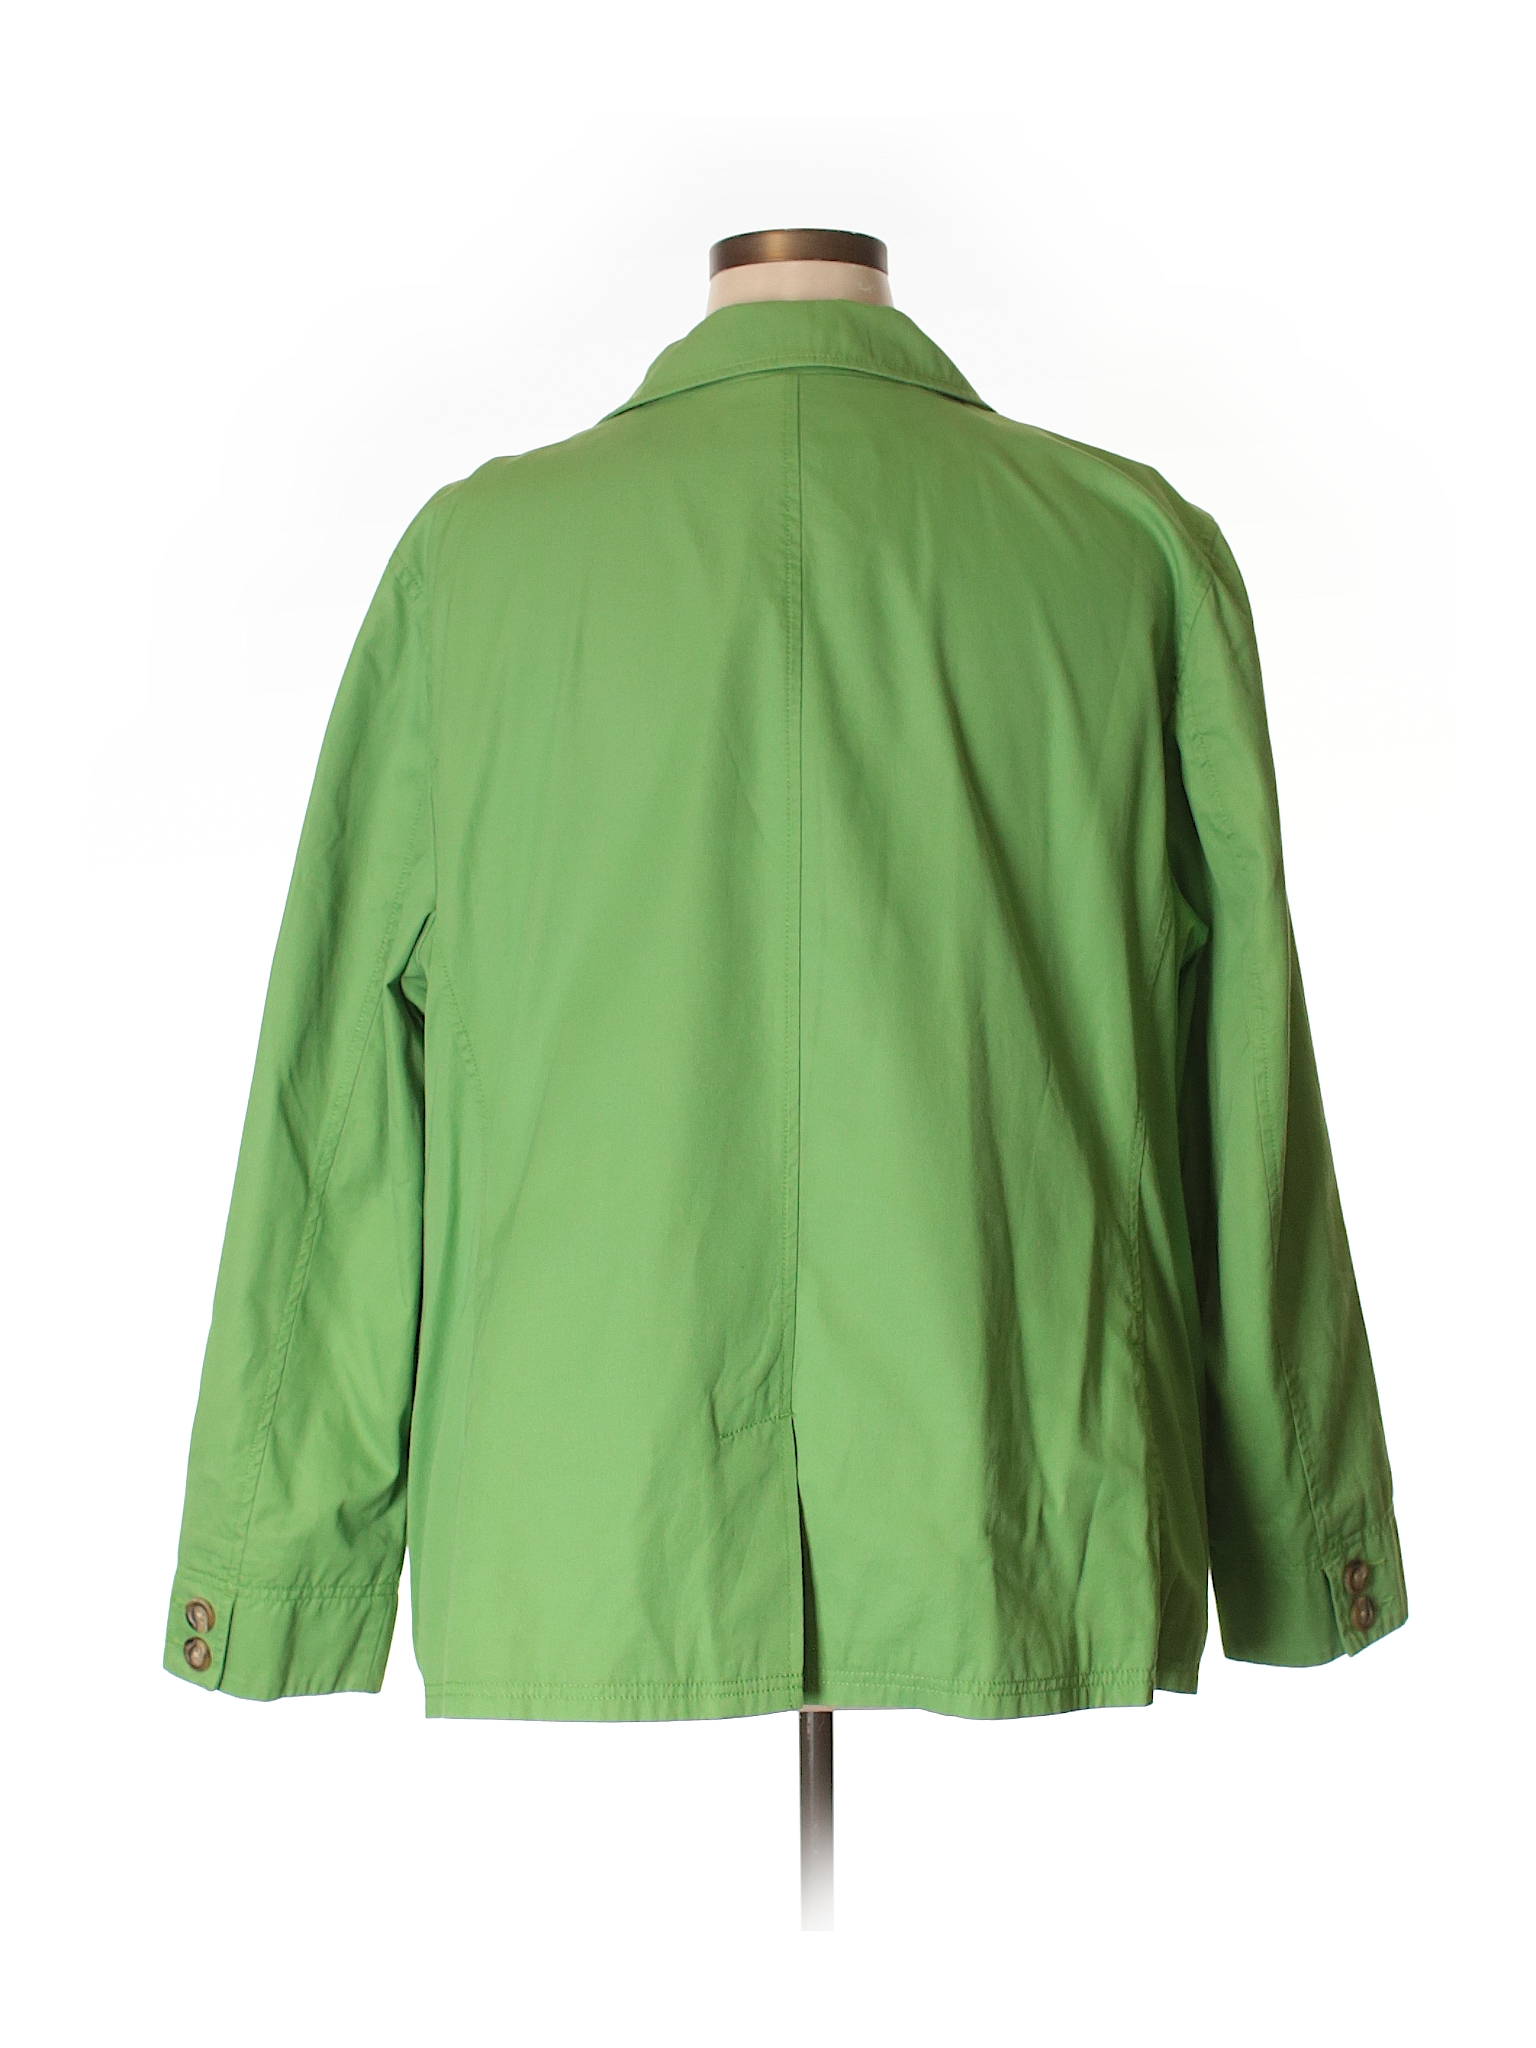 L.L.Bean Jacket: Size 26.00 Green Women's Jackets & Outerwear - New With Tags - $21.99